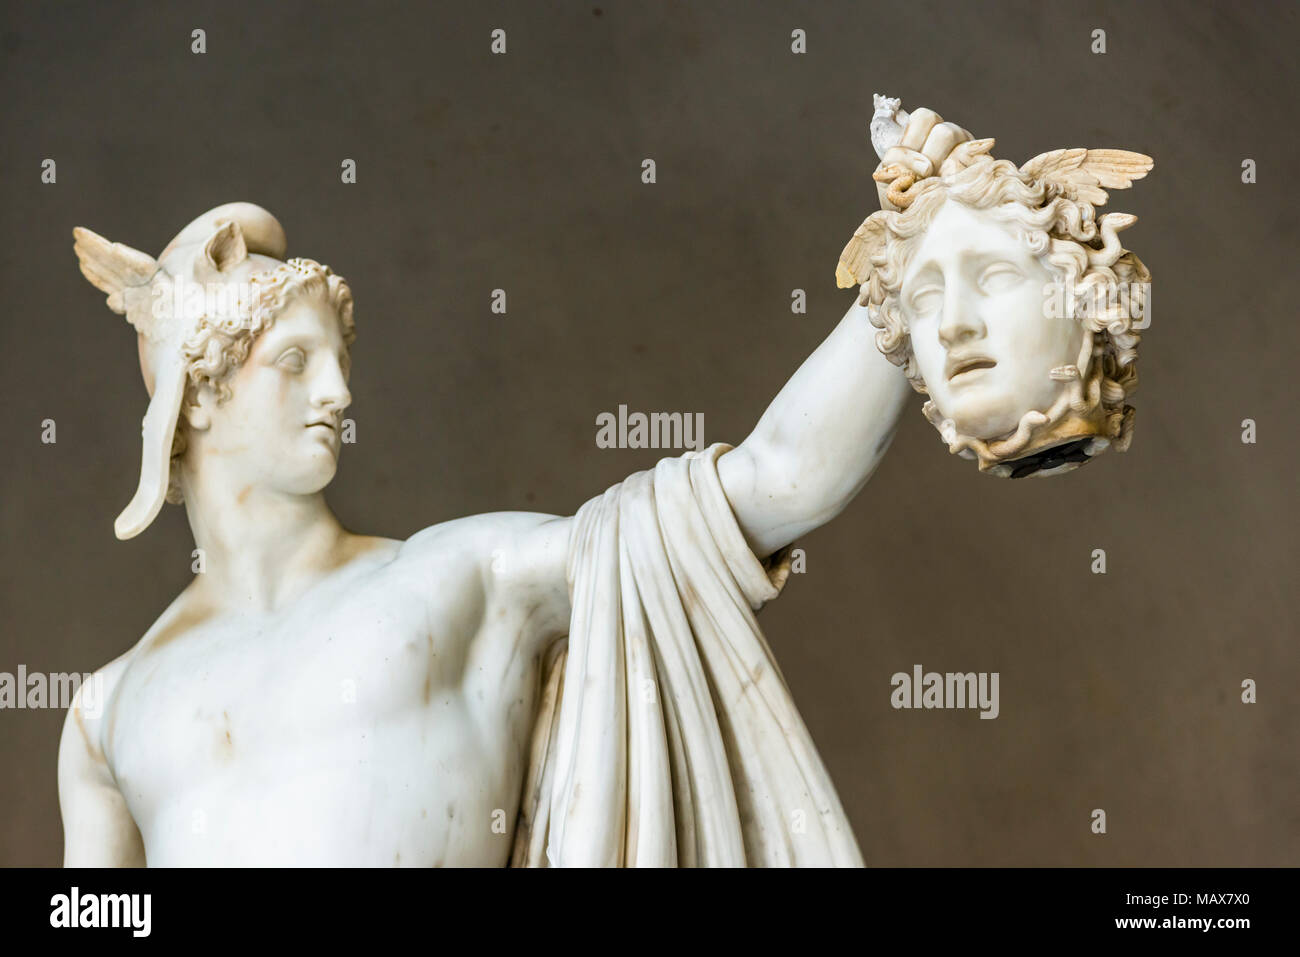 Statue Of Perseus With The Head Of Medusa By Antonio Canova